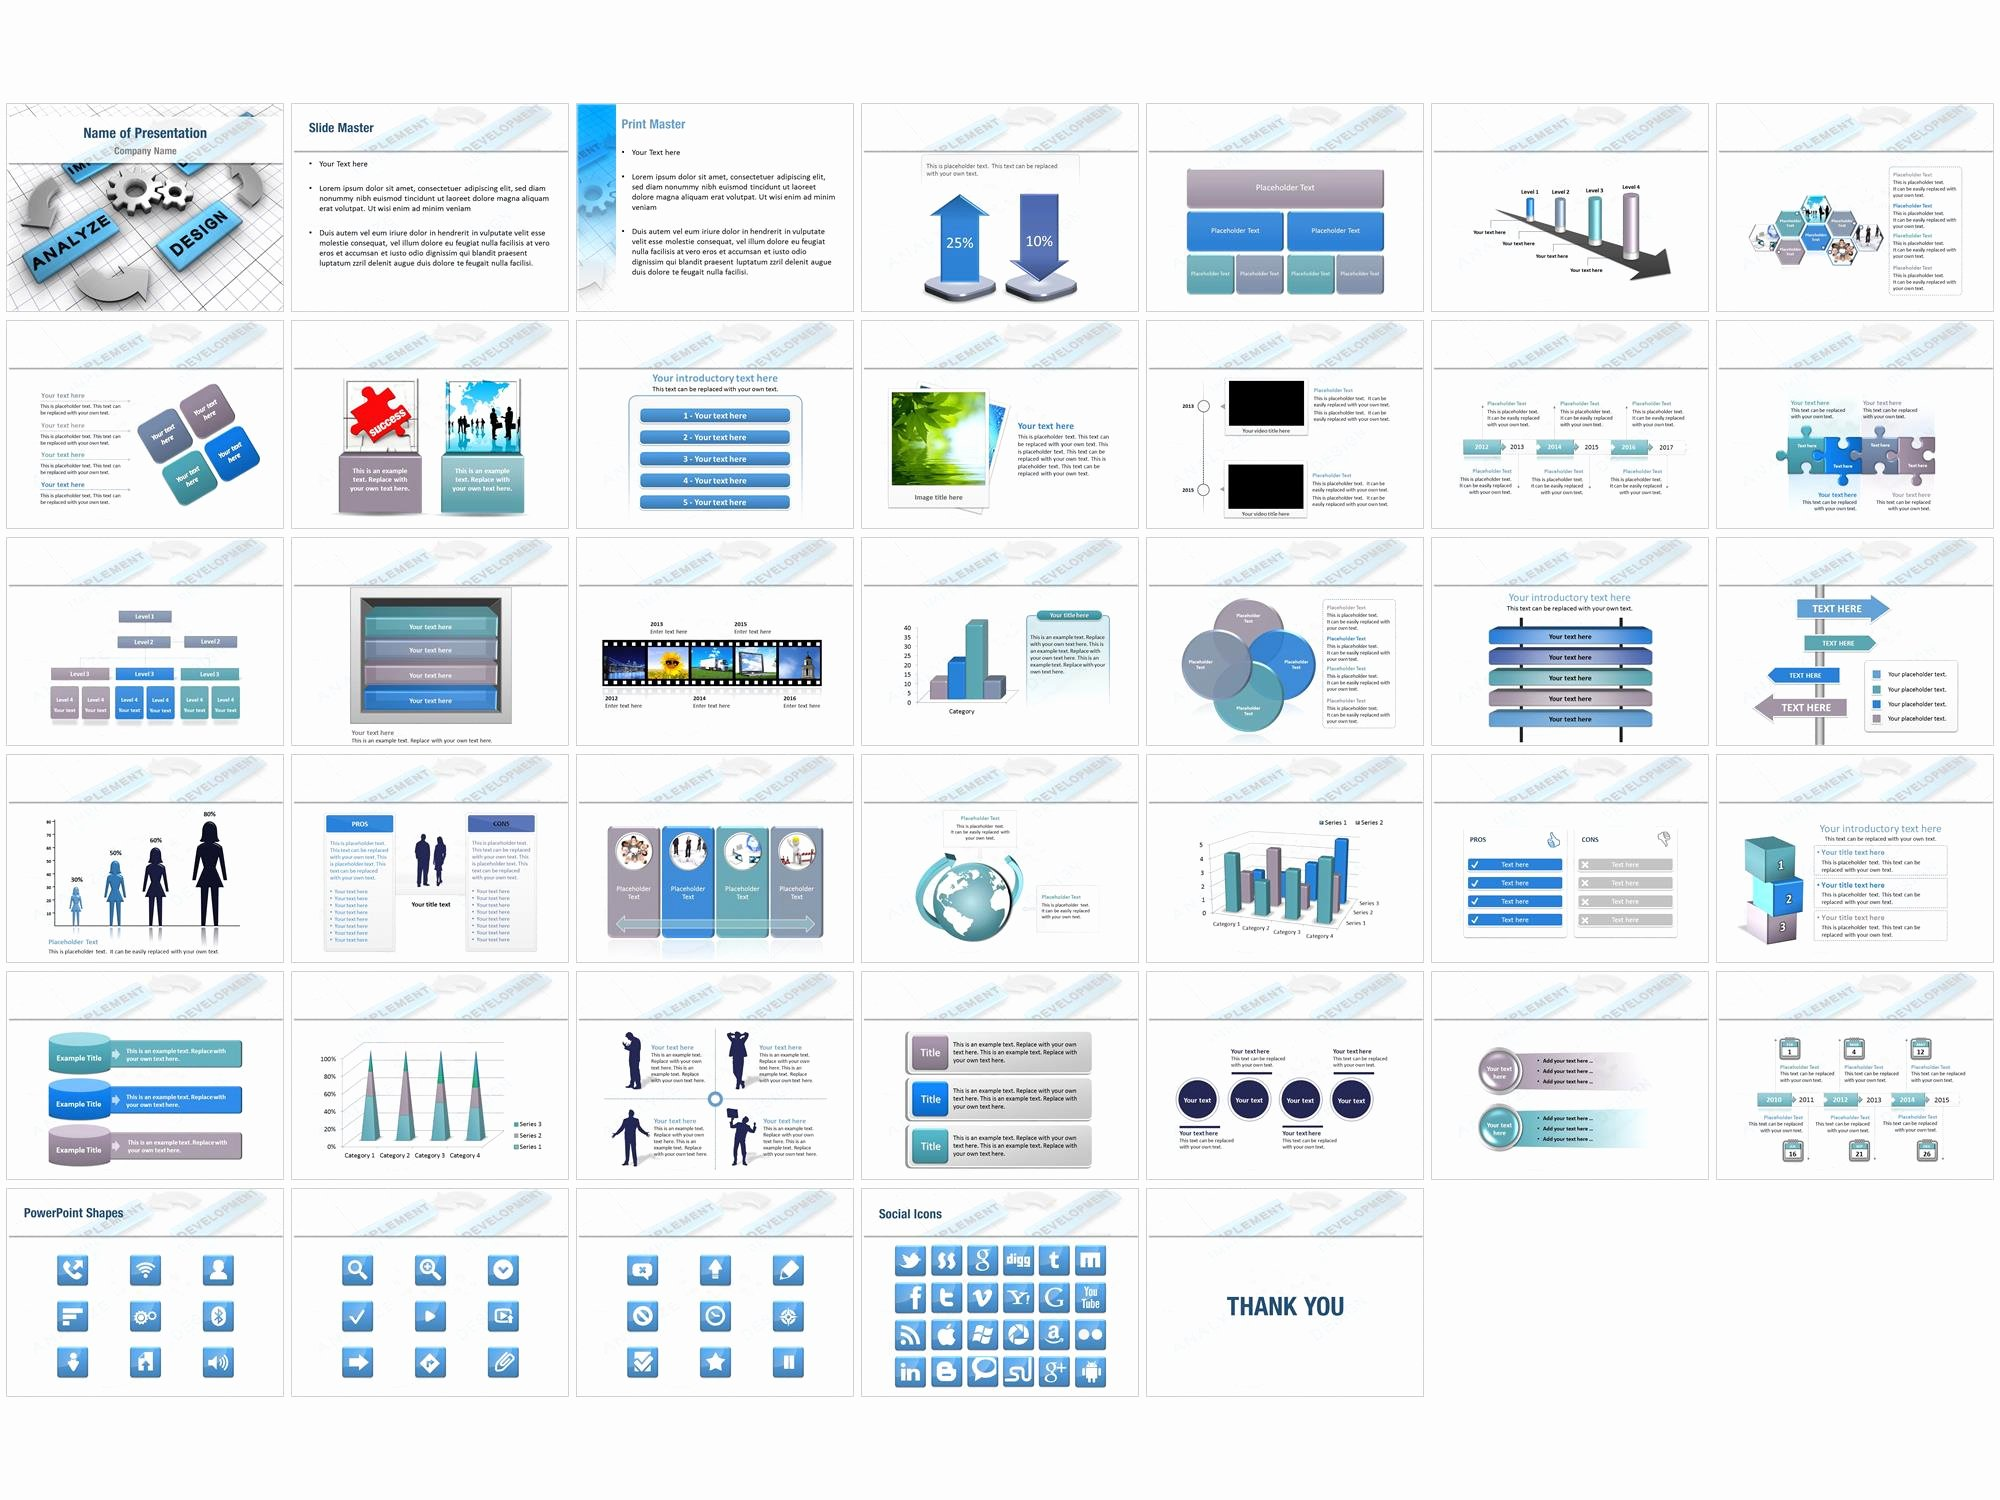 Business Plan Powerpoint Template Free Beautiful Business Plan Analysis Powerpoint Templates Business